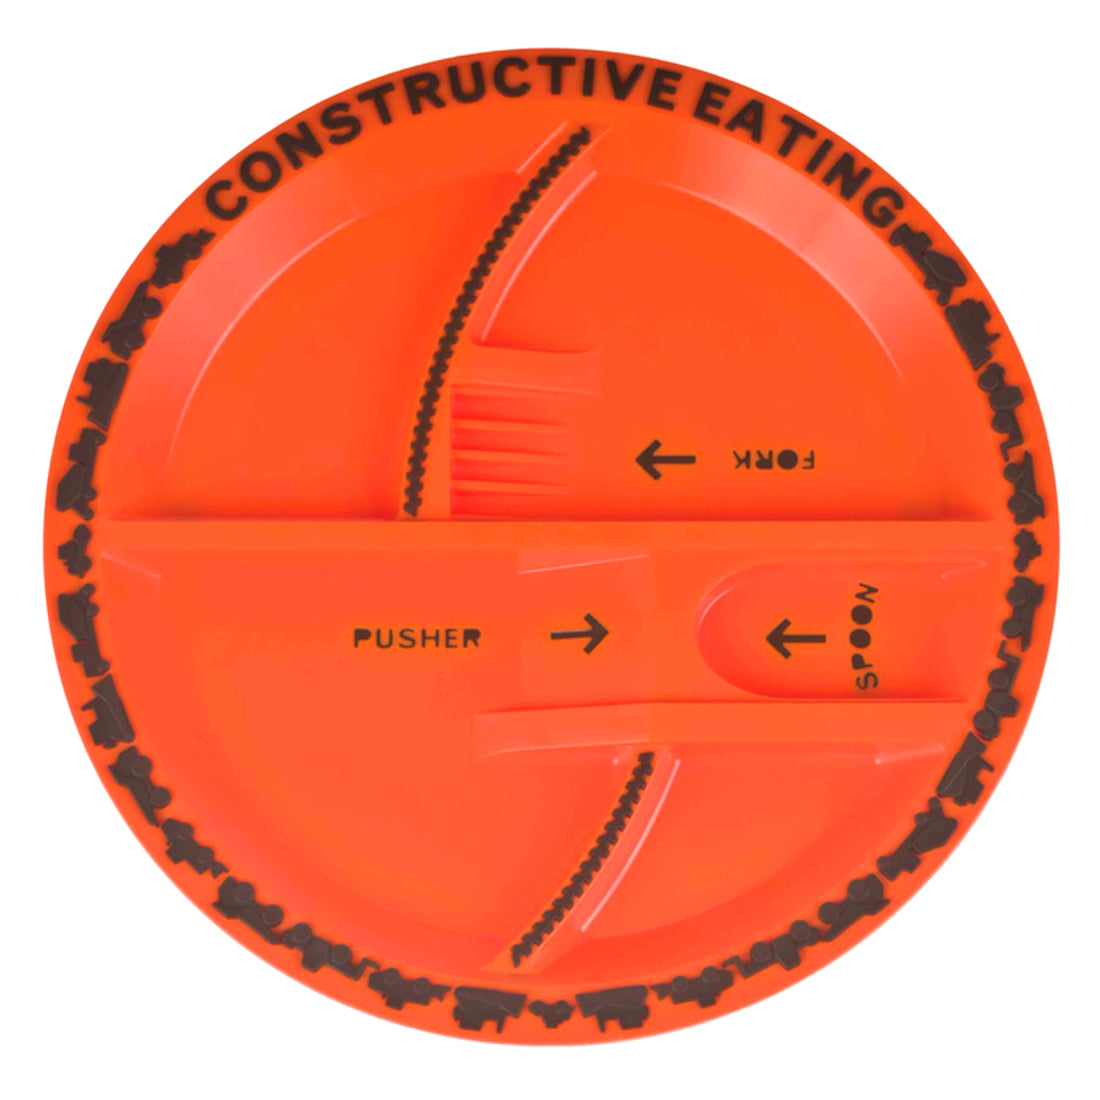 Construction Site Plate